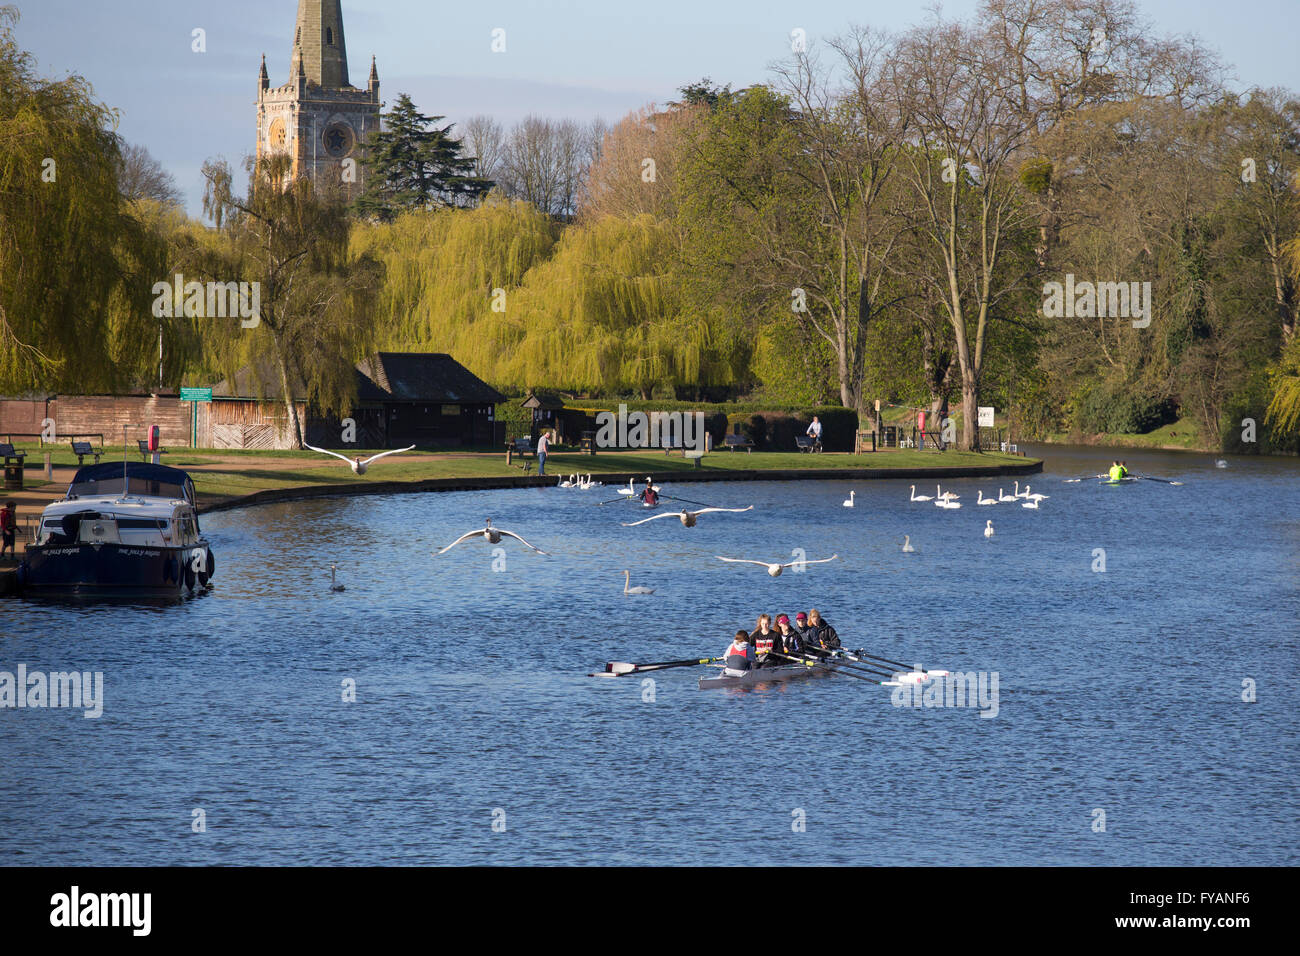 Rowers on the River Avon at Stratford-upon-Avon, UK - Stock Image